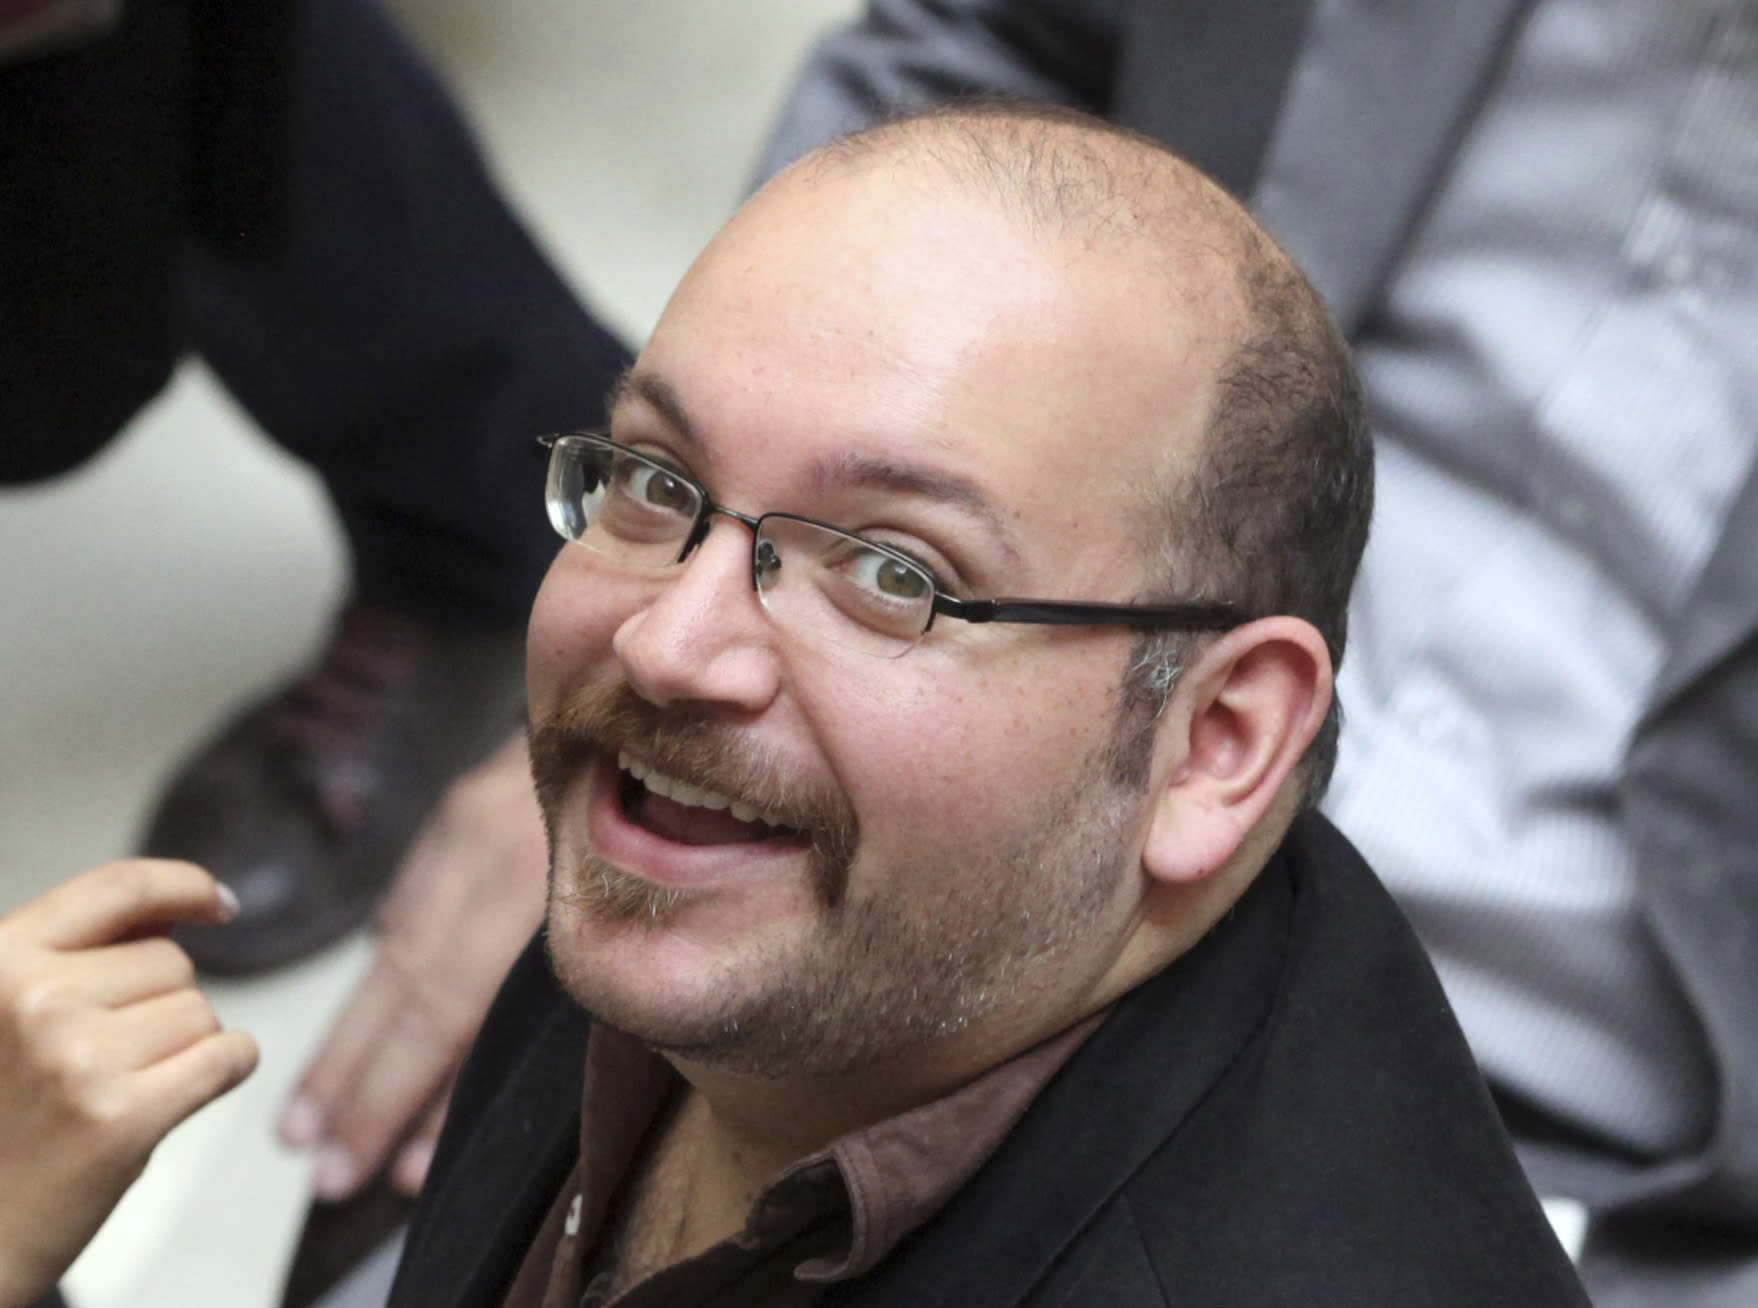 Iran begins trial of detained Washington Post reporter